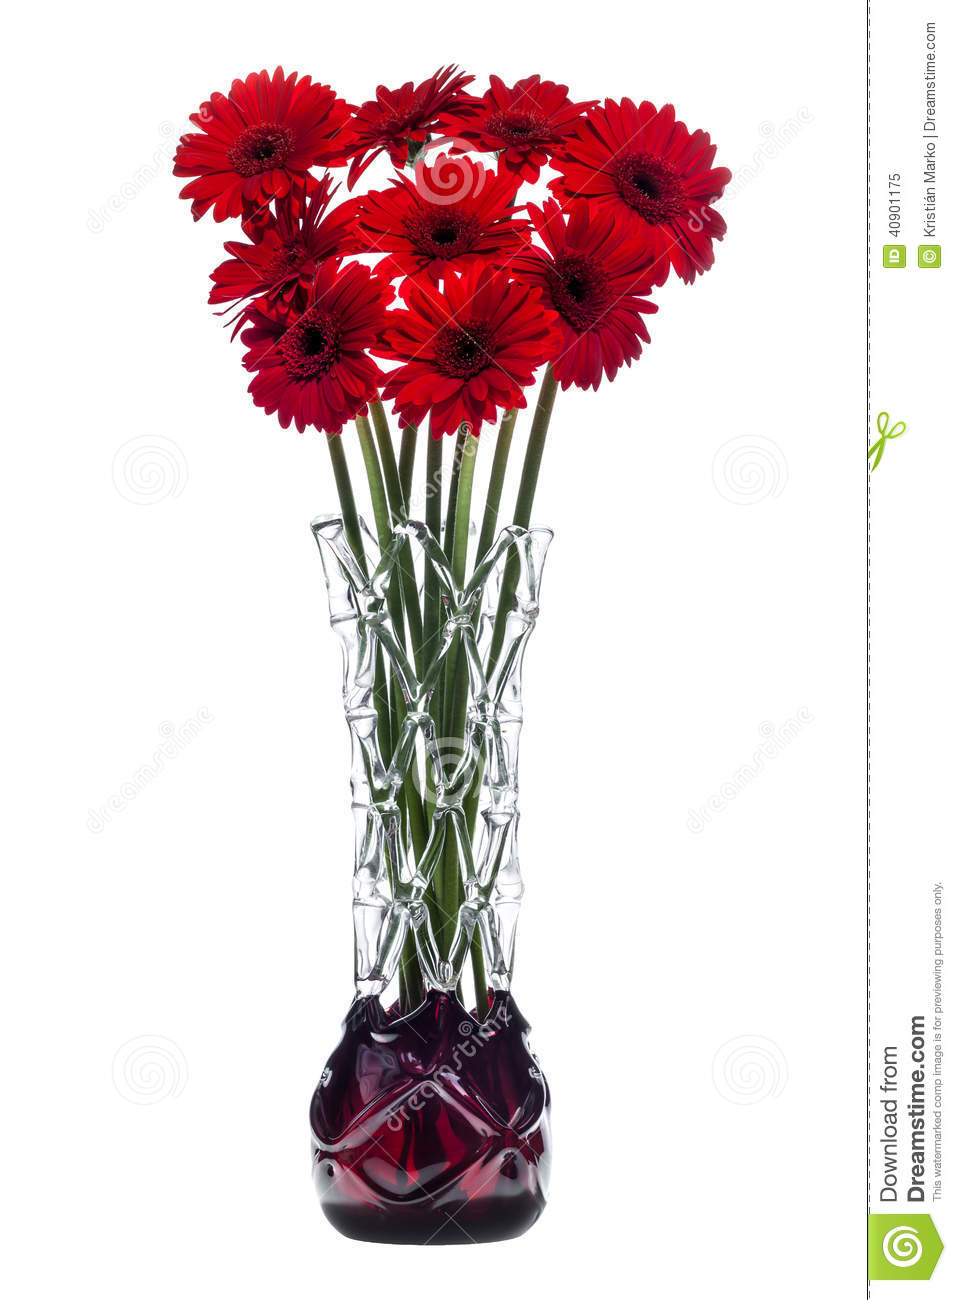 Abstract glass vase on white background with red gerbera flowers abstract glass vase on white background with red gerbera flowers reviewsmspy